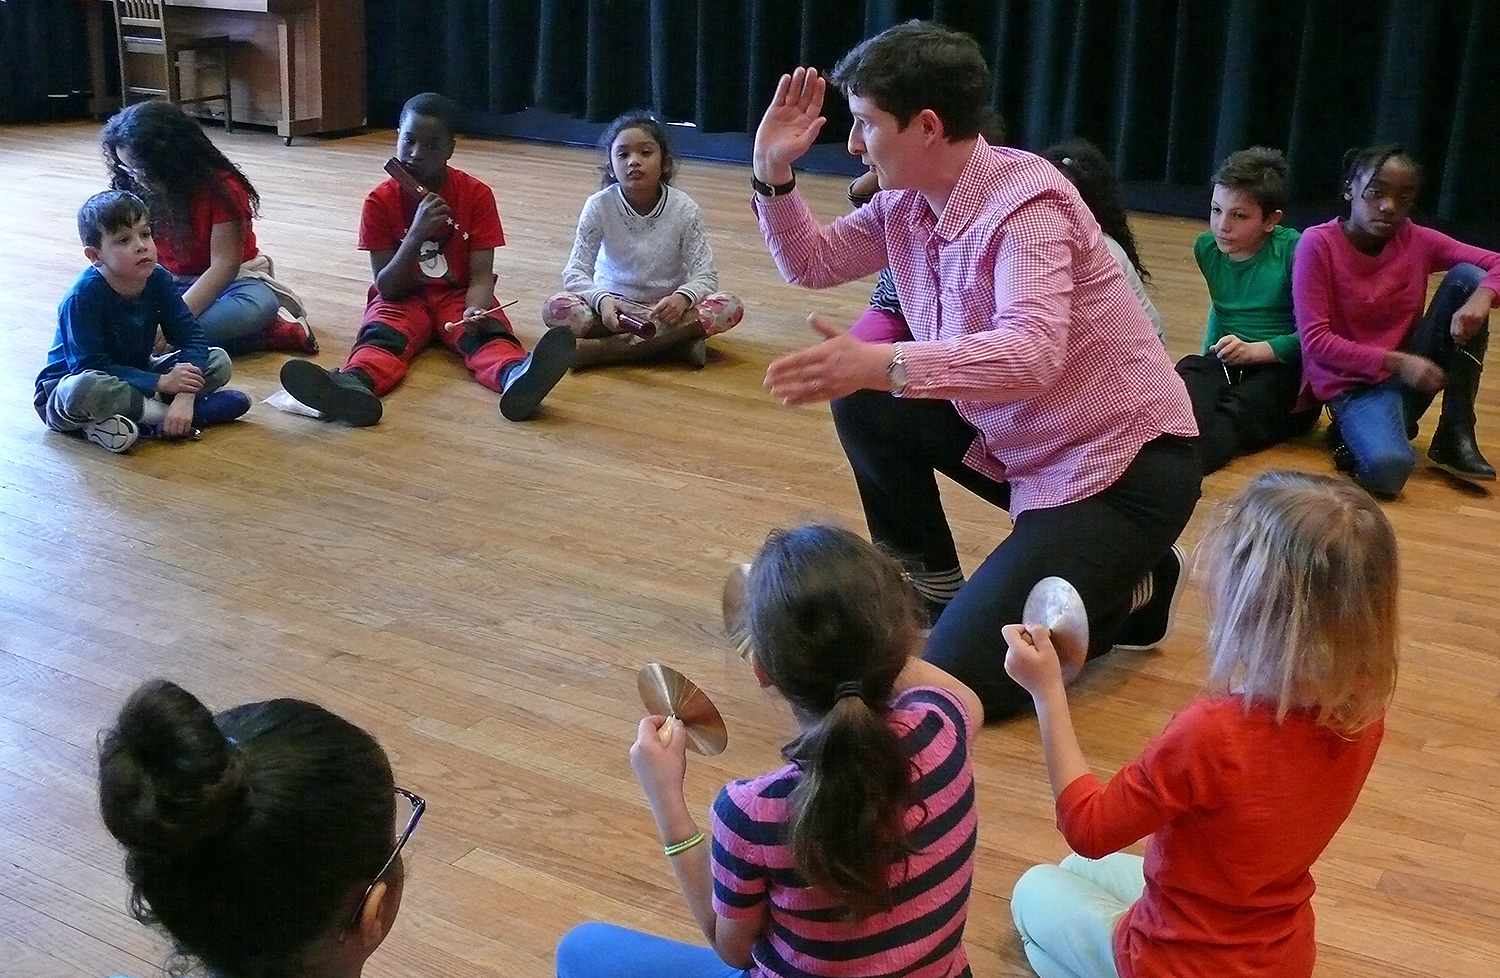 Nadya Potemkina, adjunct assistant professor of music, led a musical lesson for students of Green Street's After School program on April 4.